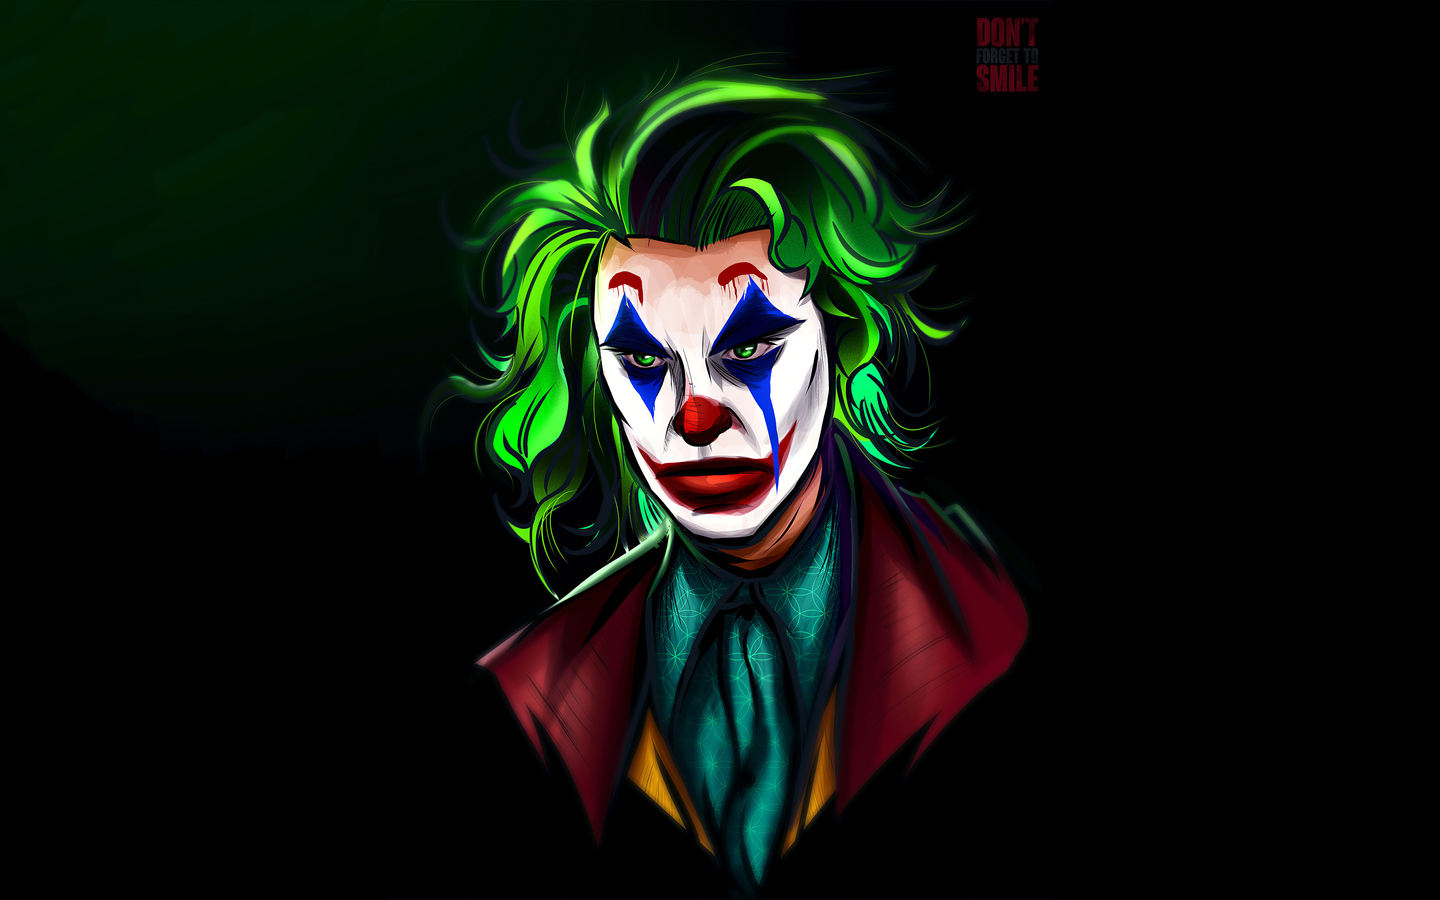 1440x900 Joker Man 4k 1440x900 Resolution Hd 4k Wallpapers Images Backgrounds Photos And Pictures